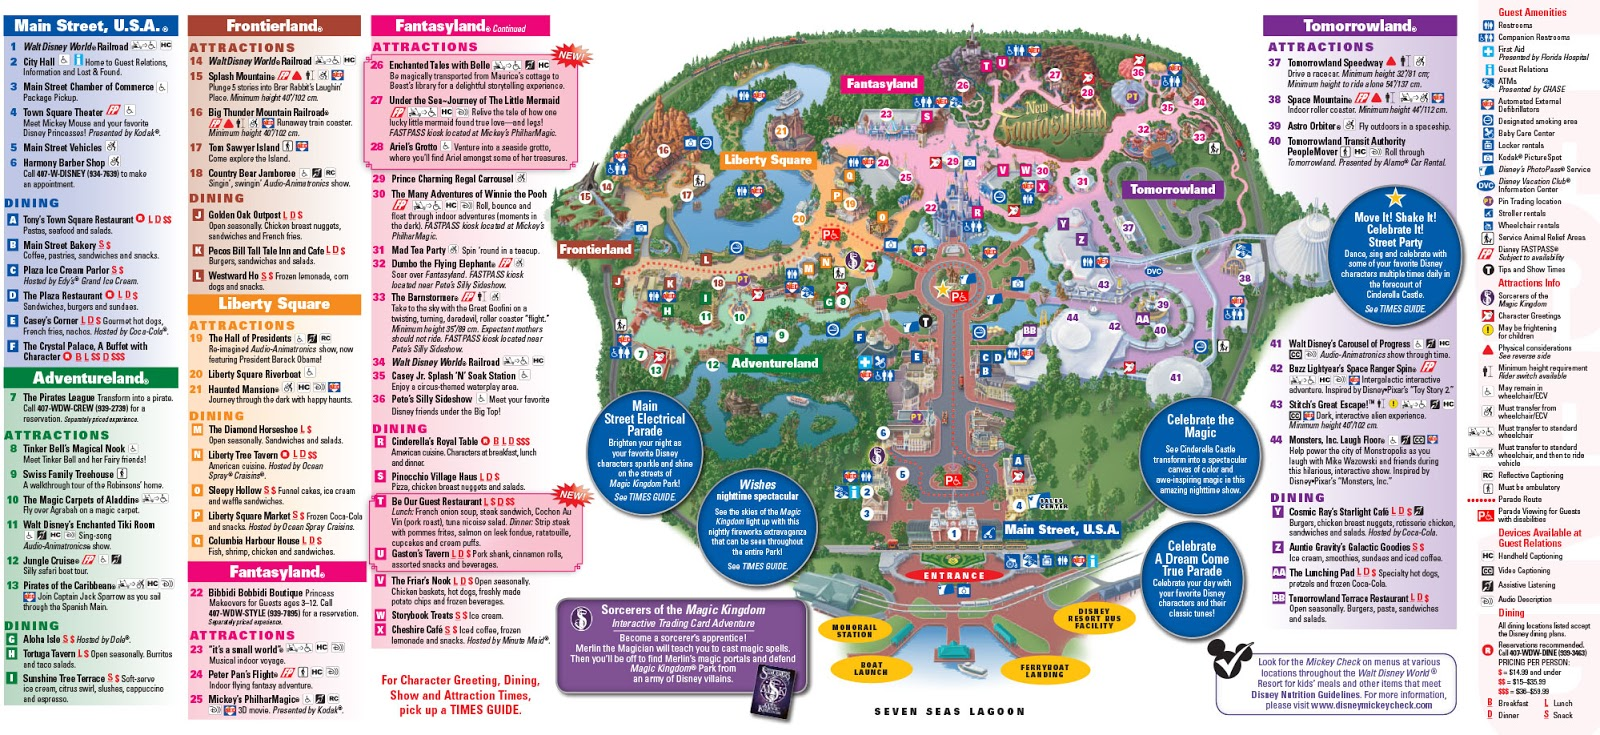 Parkscope: The New Walt Disney World Guide Maps